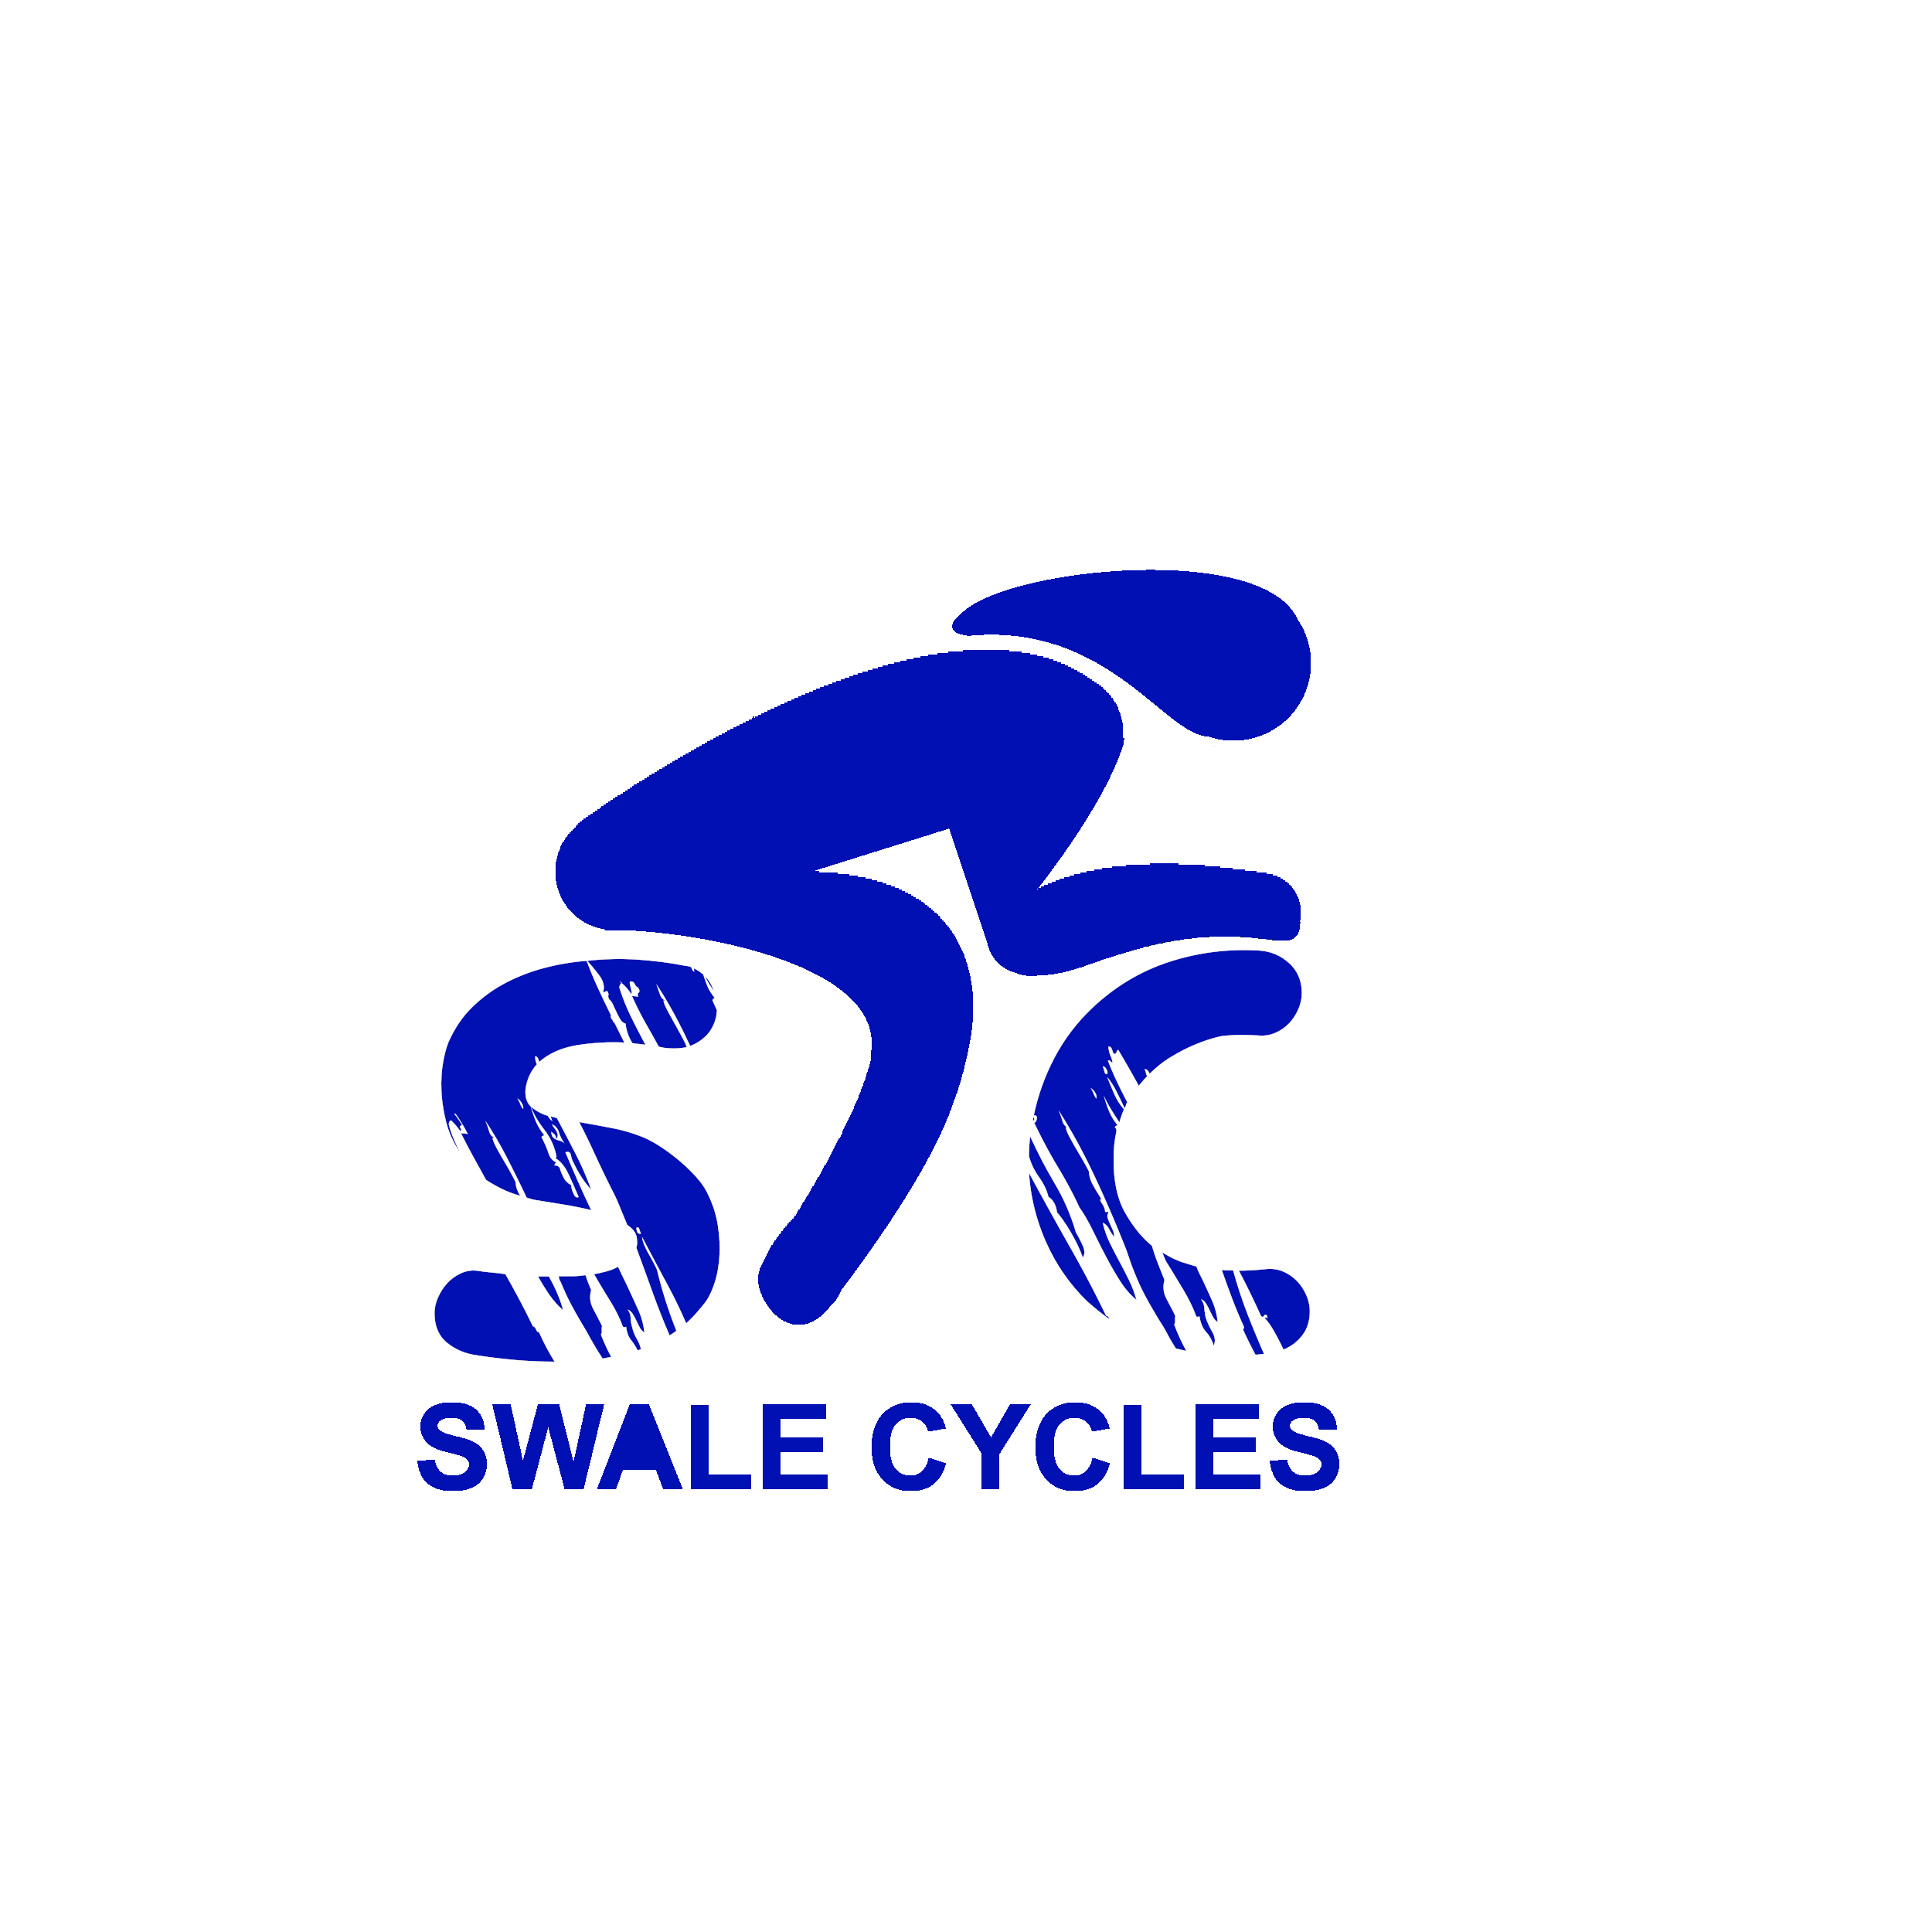 Swale Cycles